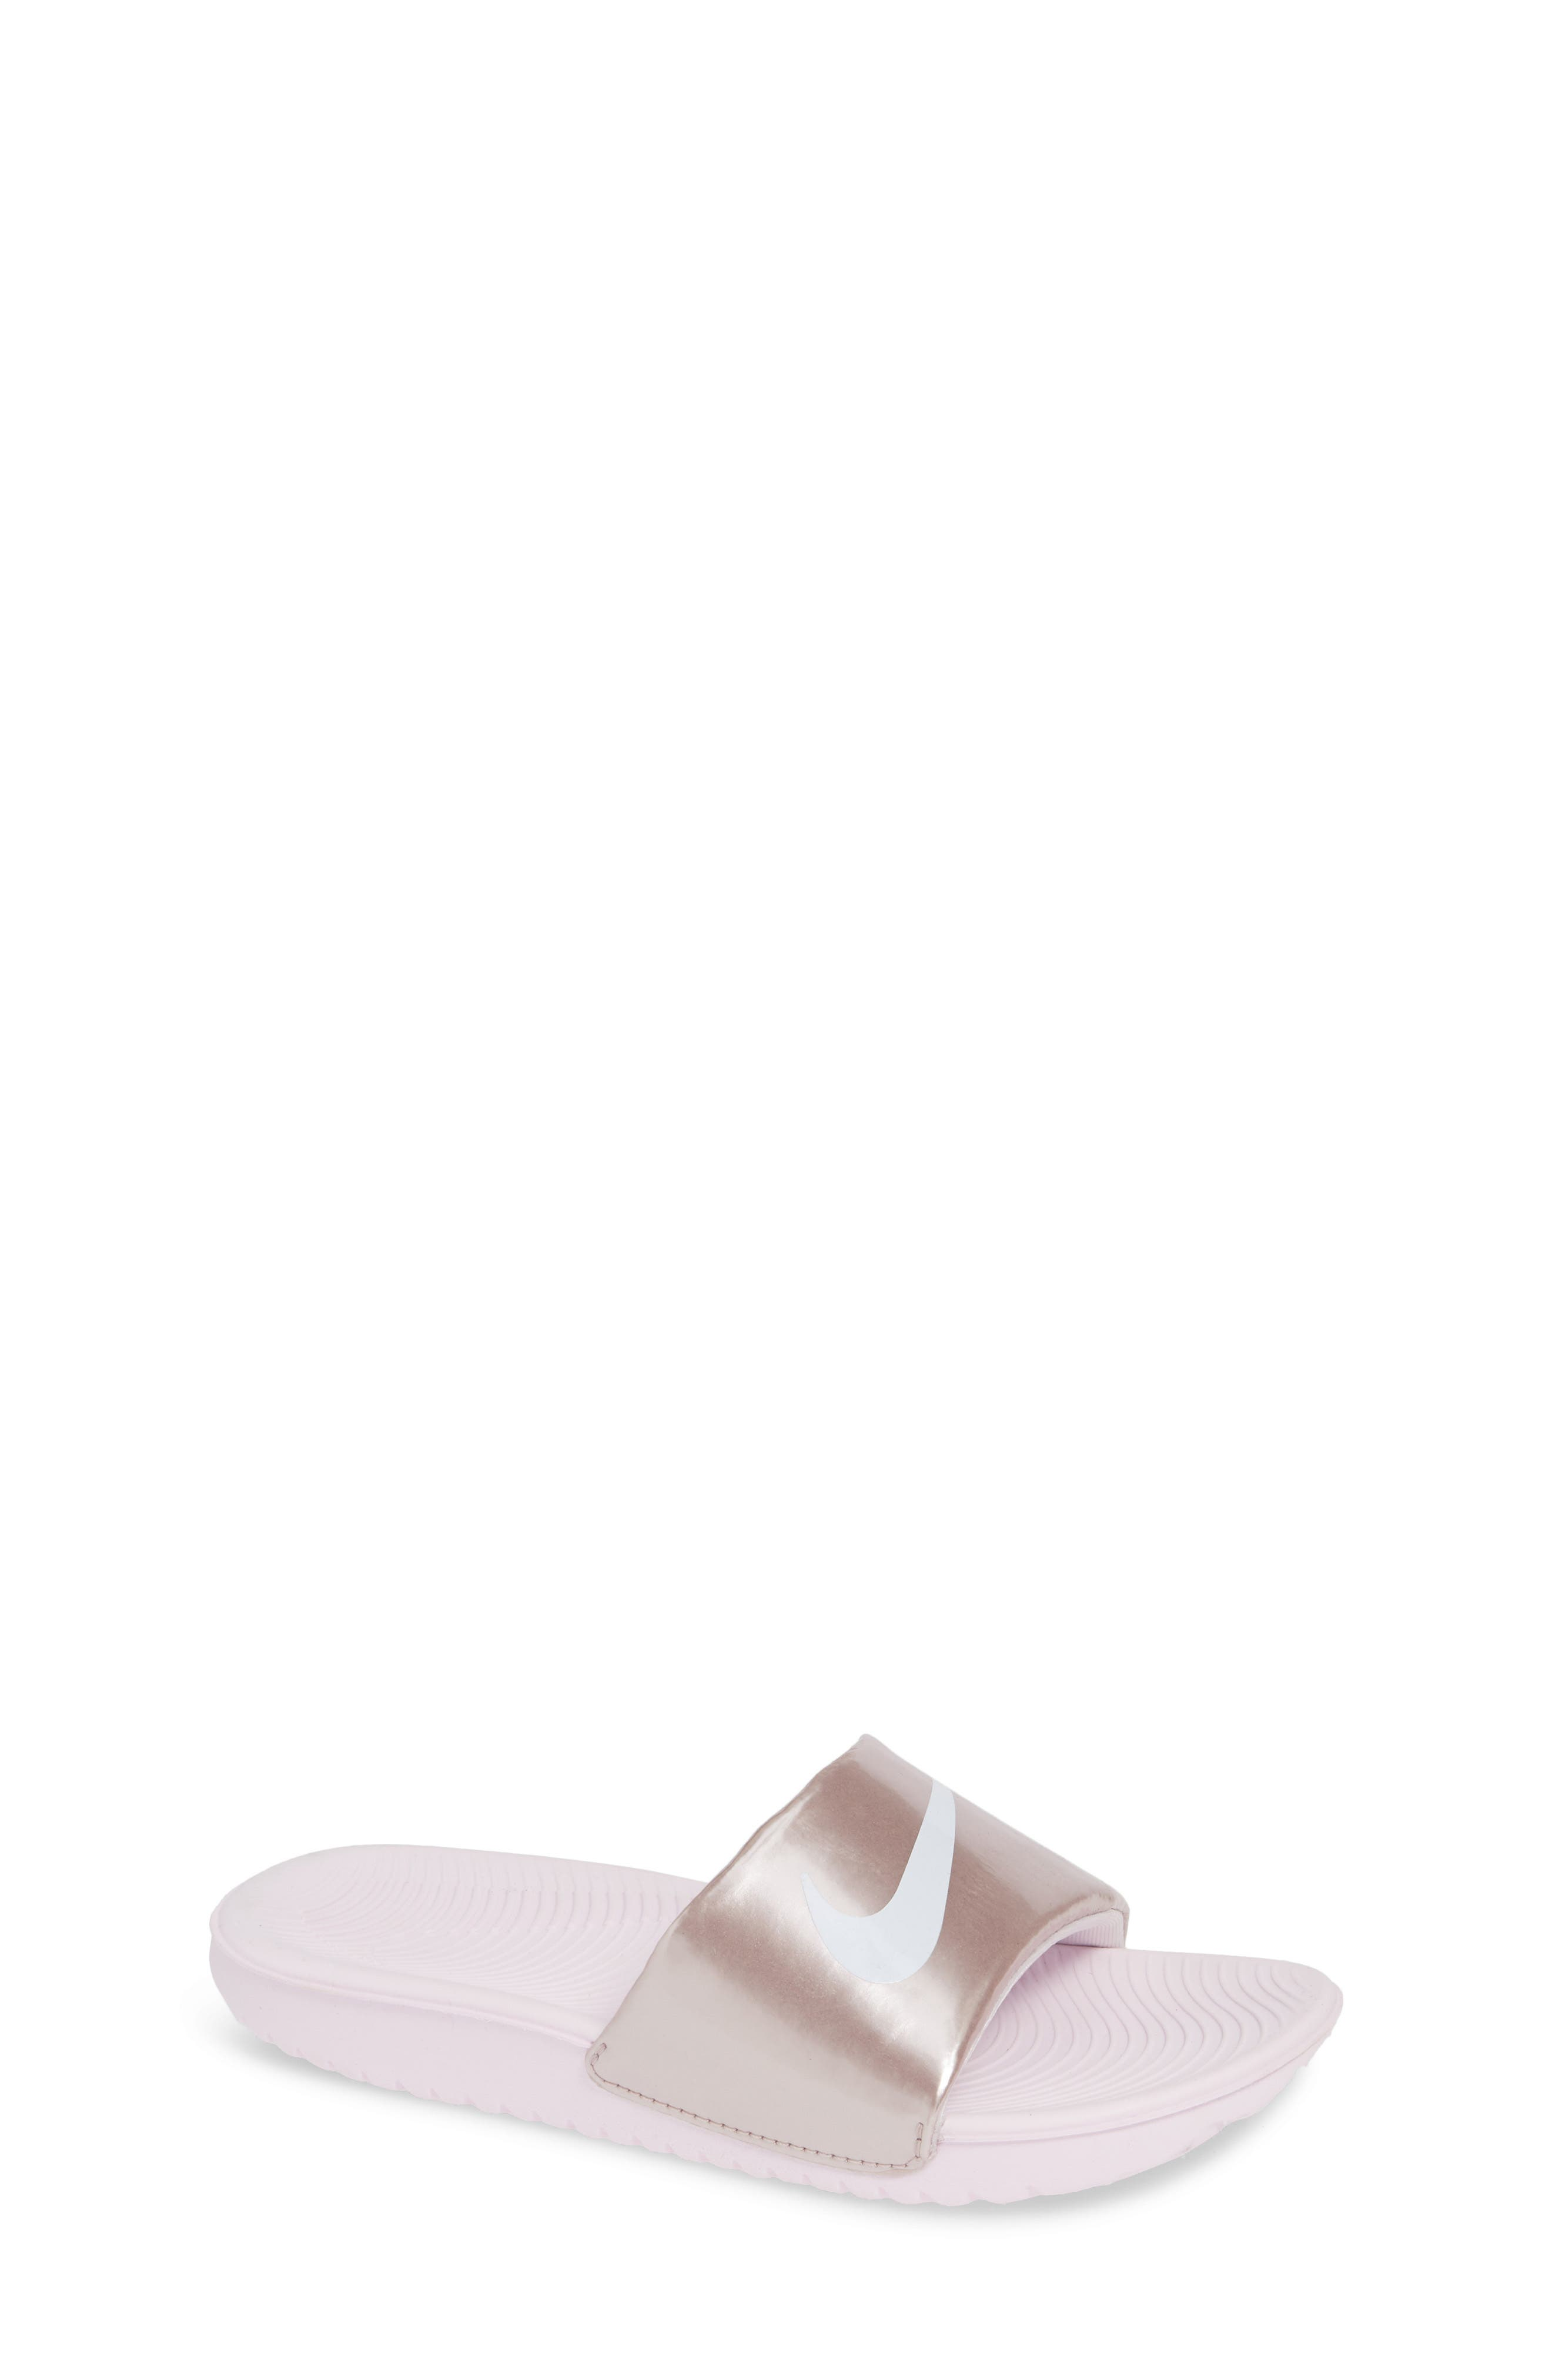 NIKE 'Kawa' Slide Sandal, Main, color, ARCTIC PINK/ WHITE/ RED BRONZE